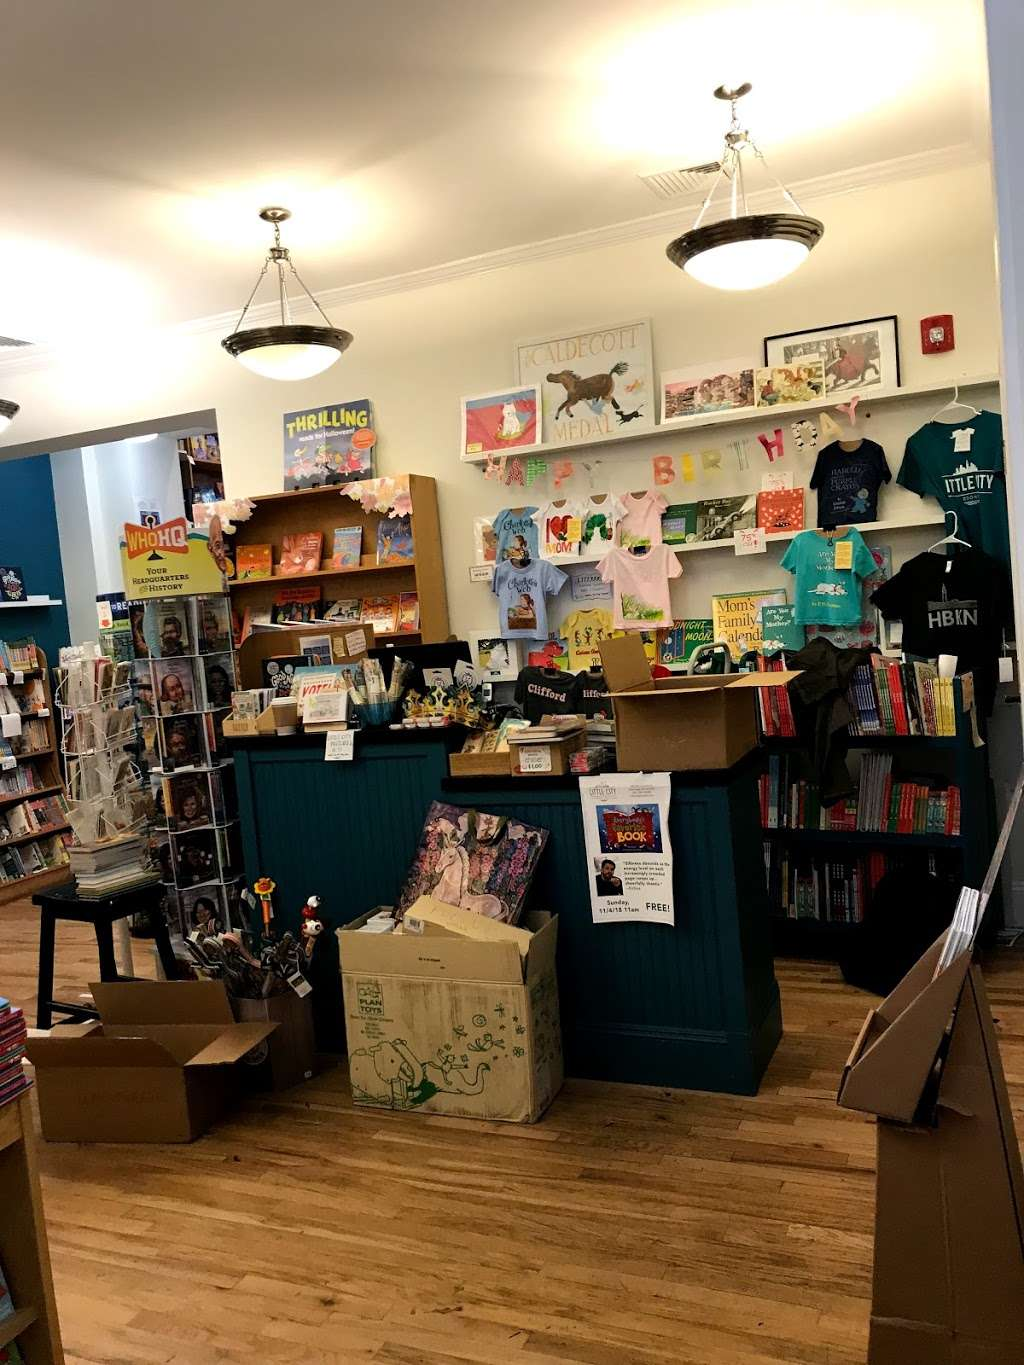 Little City Books - book store  | Photo 8 of 10 | Address: 100 Bloomfield St, Hoboken, NJ 07030, USA | Phone: (201) 626-7323